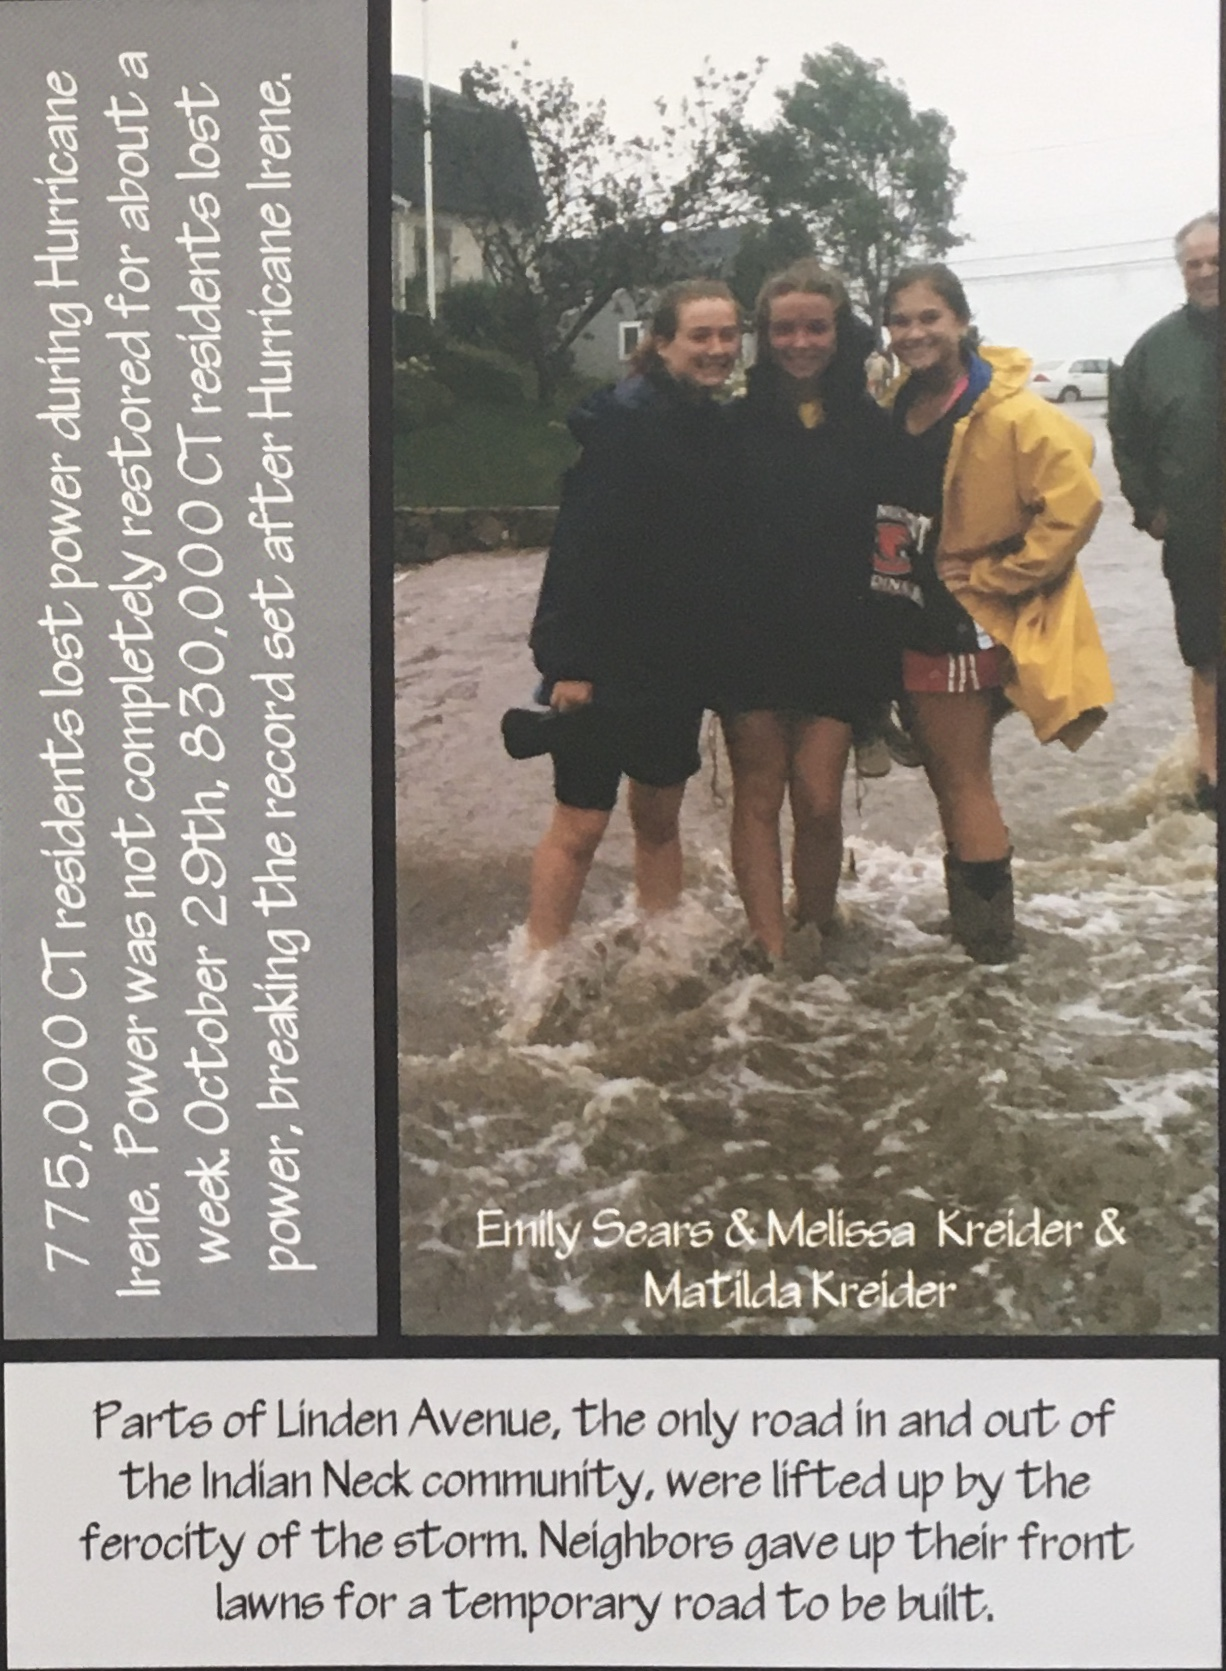 A close-up of the picture of me, my sister, and a friend in the 2012 yearbook, taken after the storms.